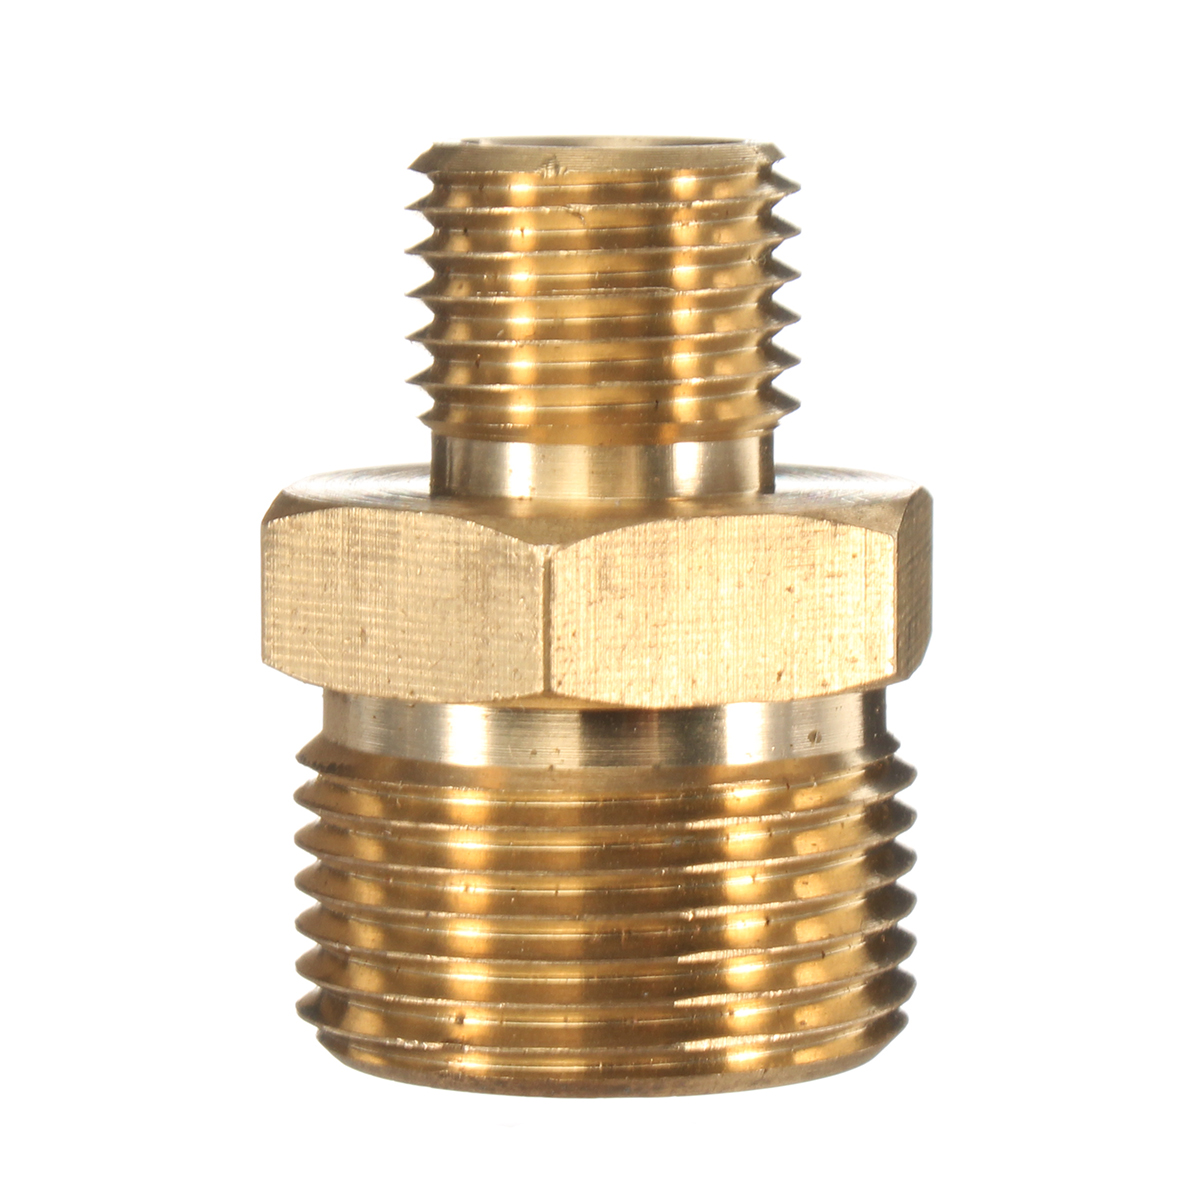 M22 Male to 1-4 Male Adapter Brass Pressure Washer Hose Quick Connect Coupling Fitting for Karcher